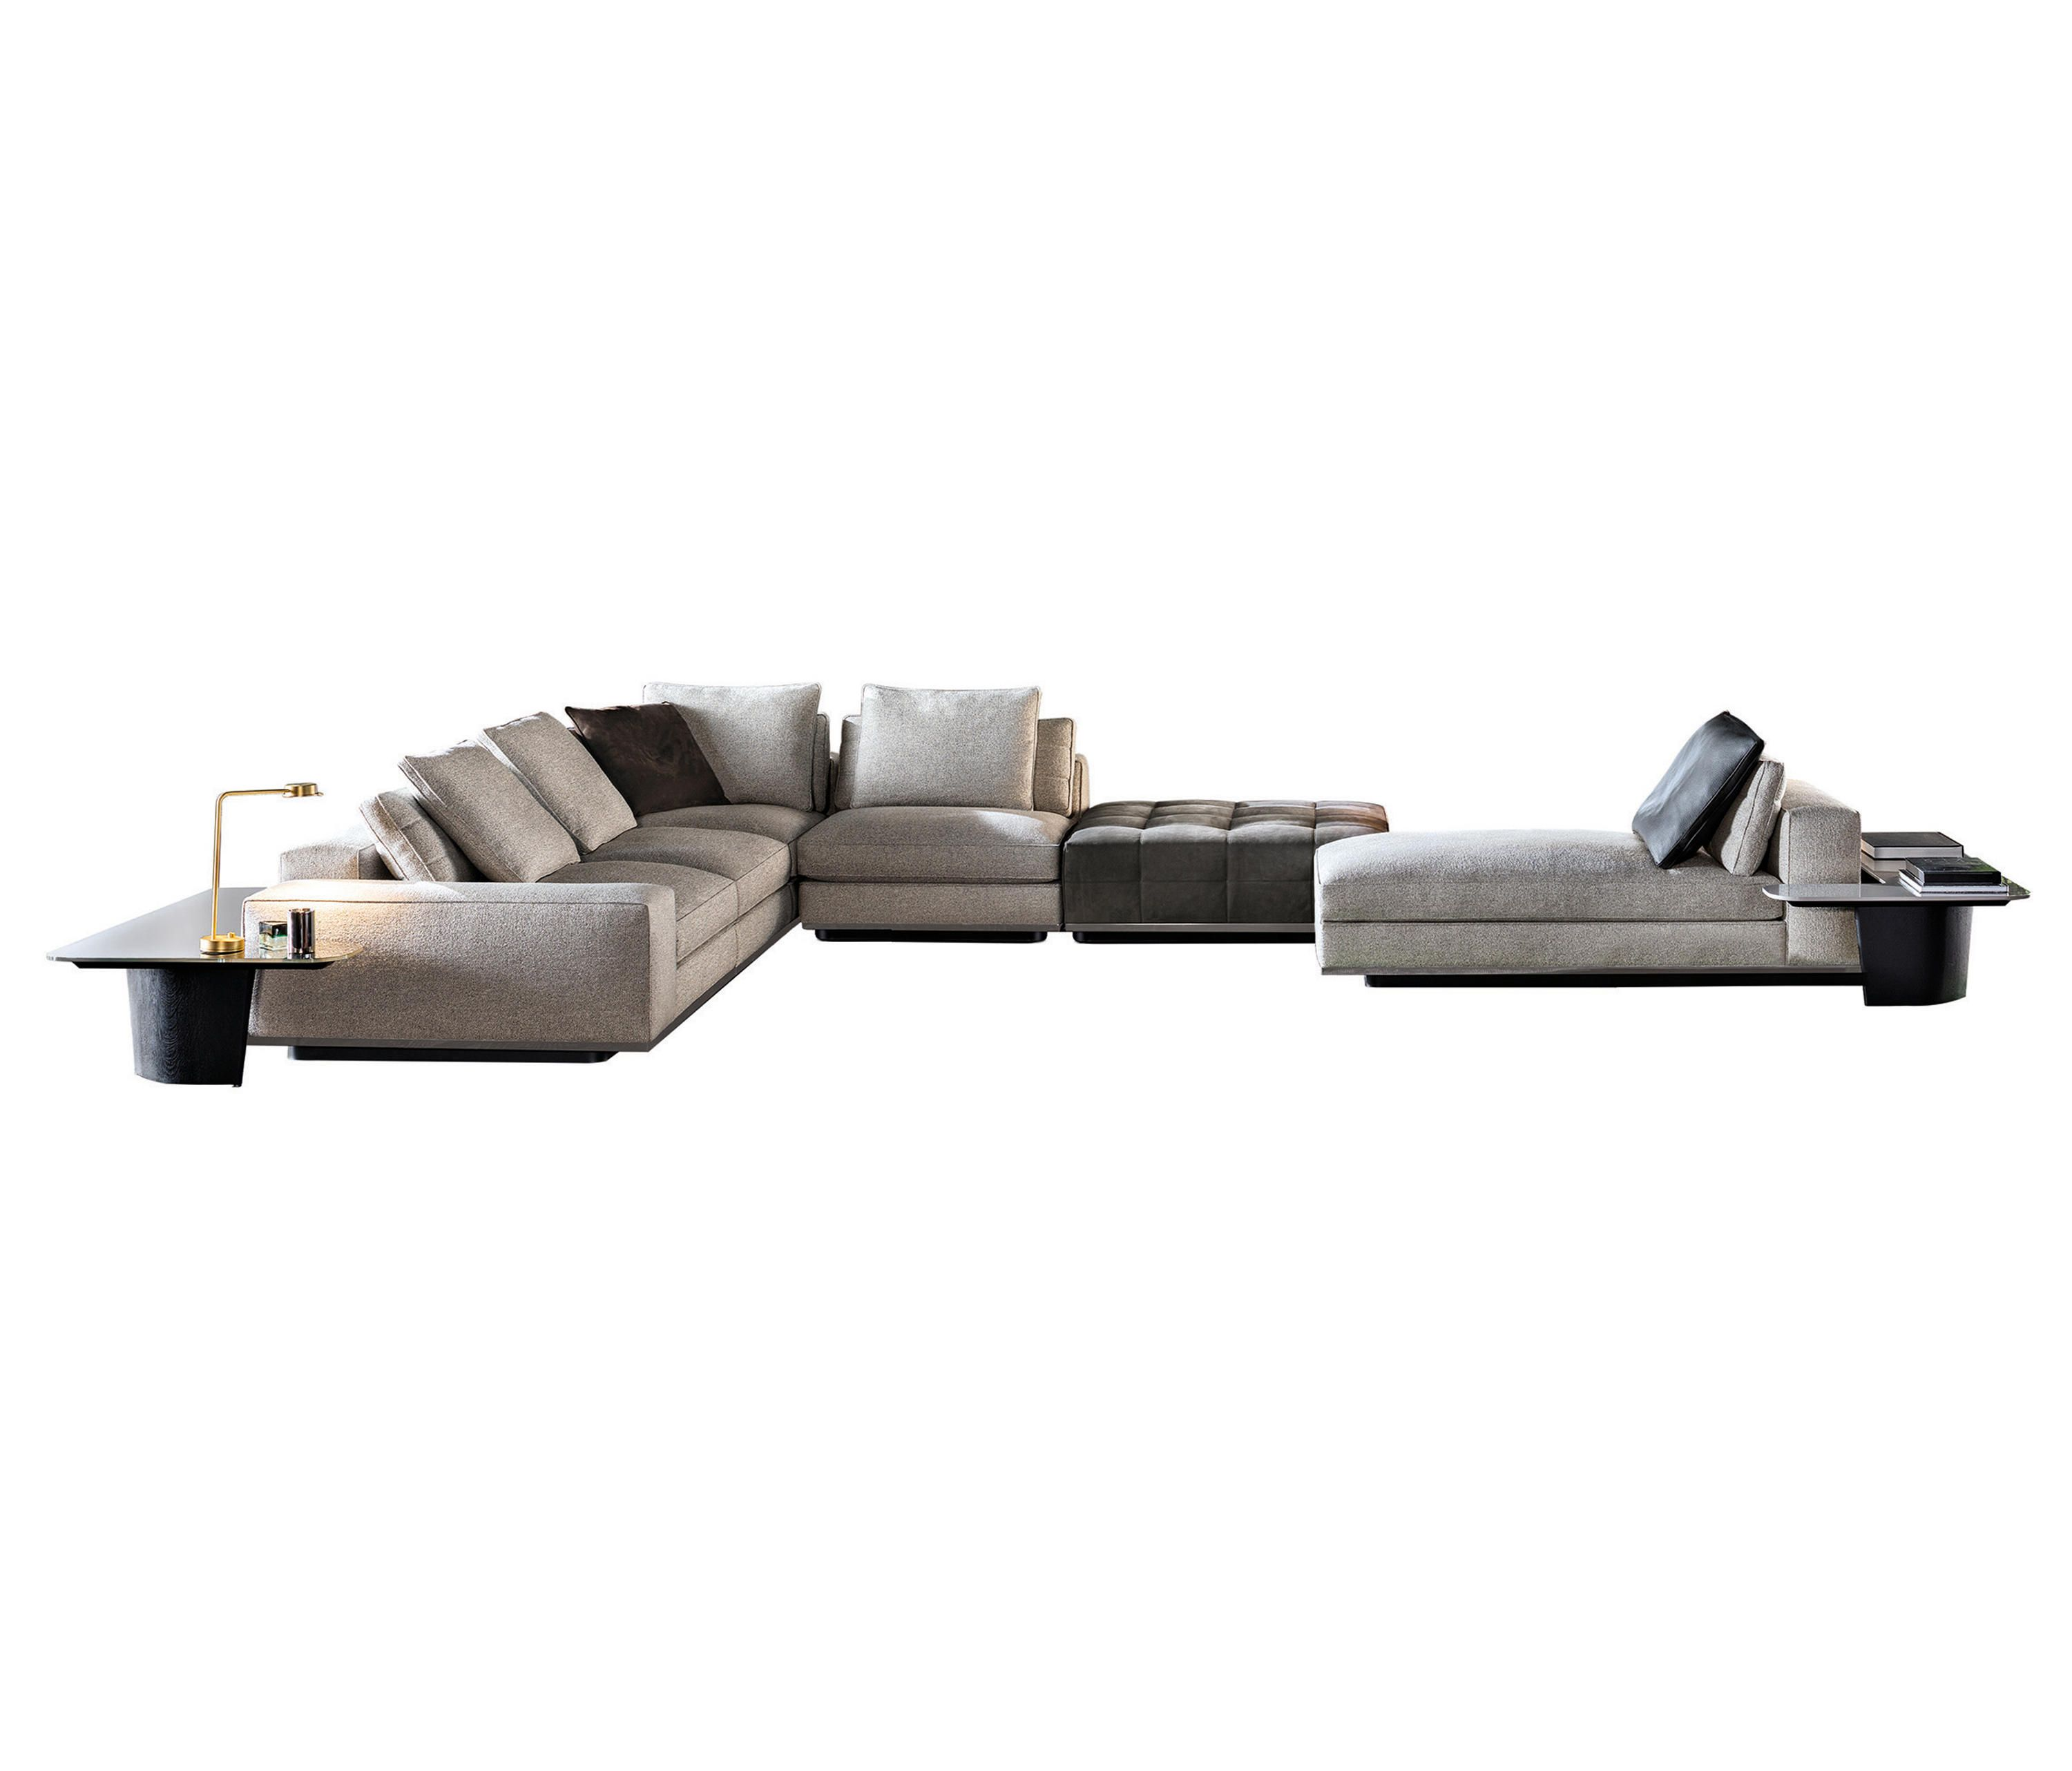 Lawrence Seating System Designer Modular Sofa Systems From Minotti All Information High Resolution Images Cads Catal Minotti Sofa Design Modular Sofa